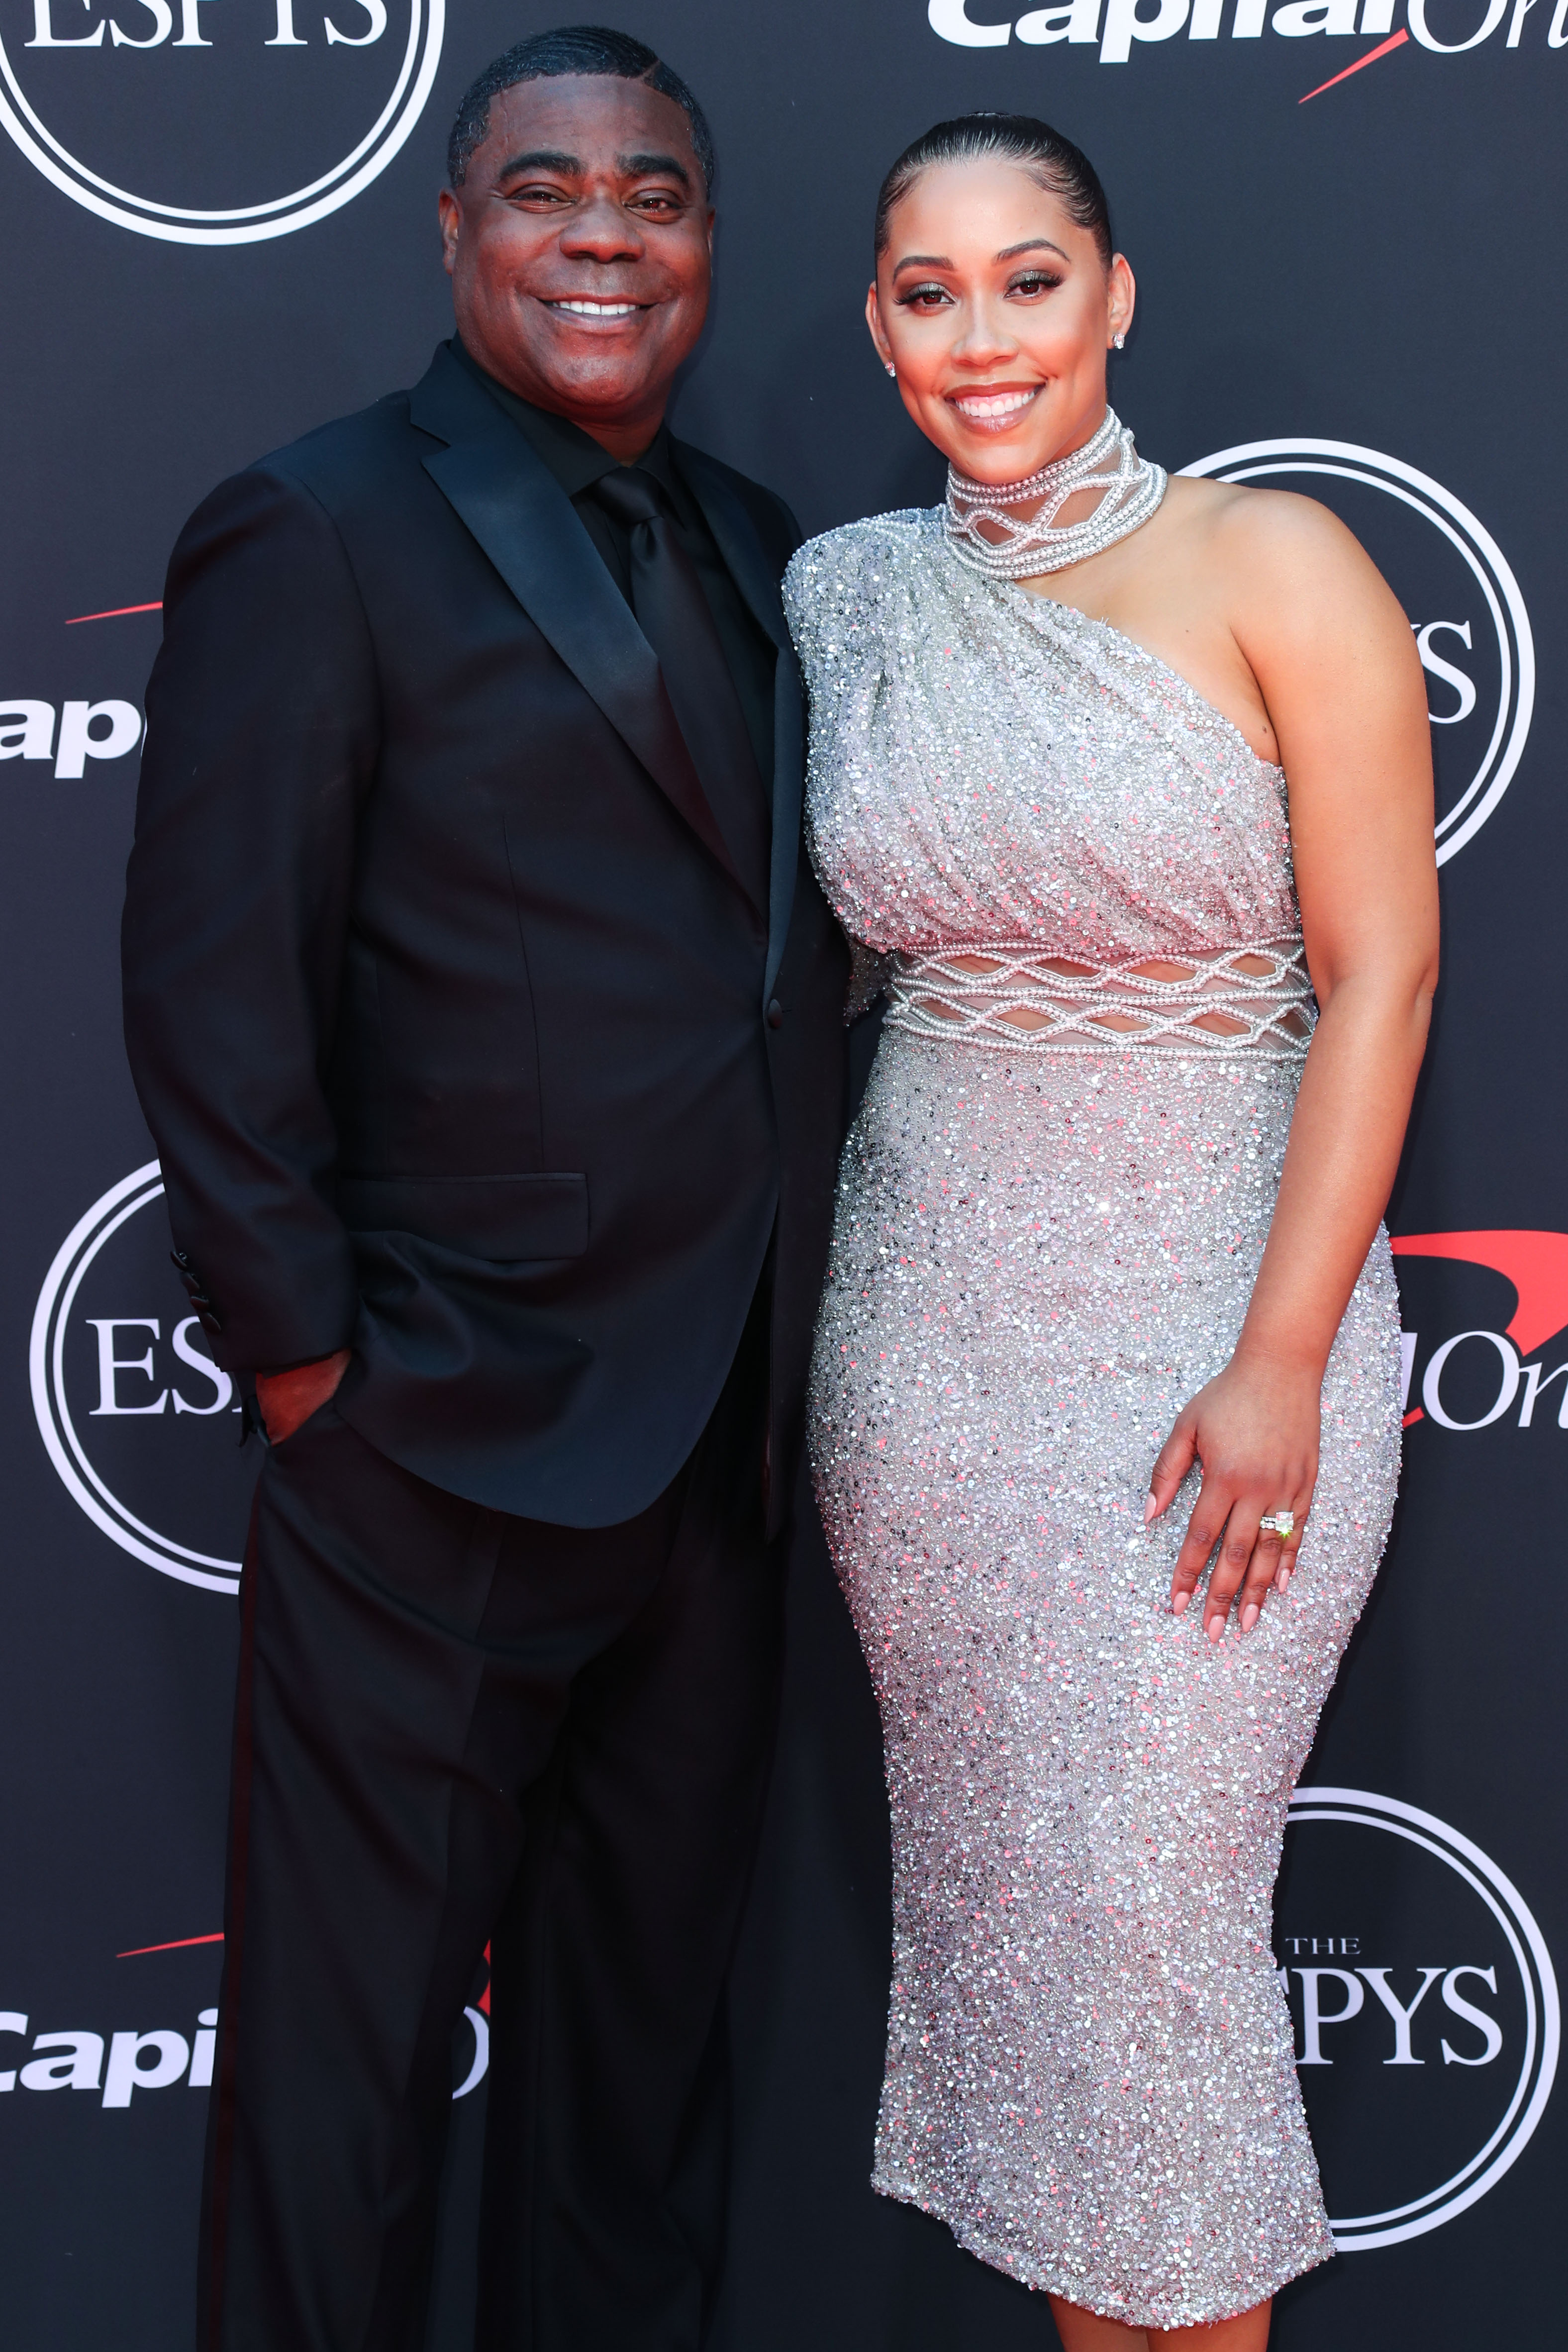 Tracy Morgan and Megan Wollover arrive at the 2019 ESPY Awards held at Microsoft Theater L.A. Live on July 10, 2019 in Los Angeles, California, United States. (Photo by Xavier Collin/Image Press Agency)